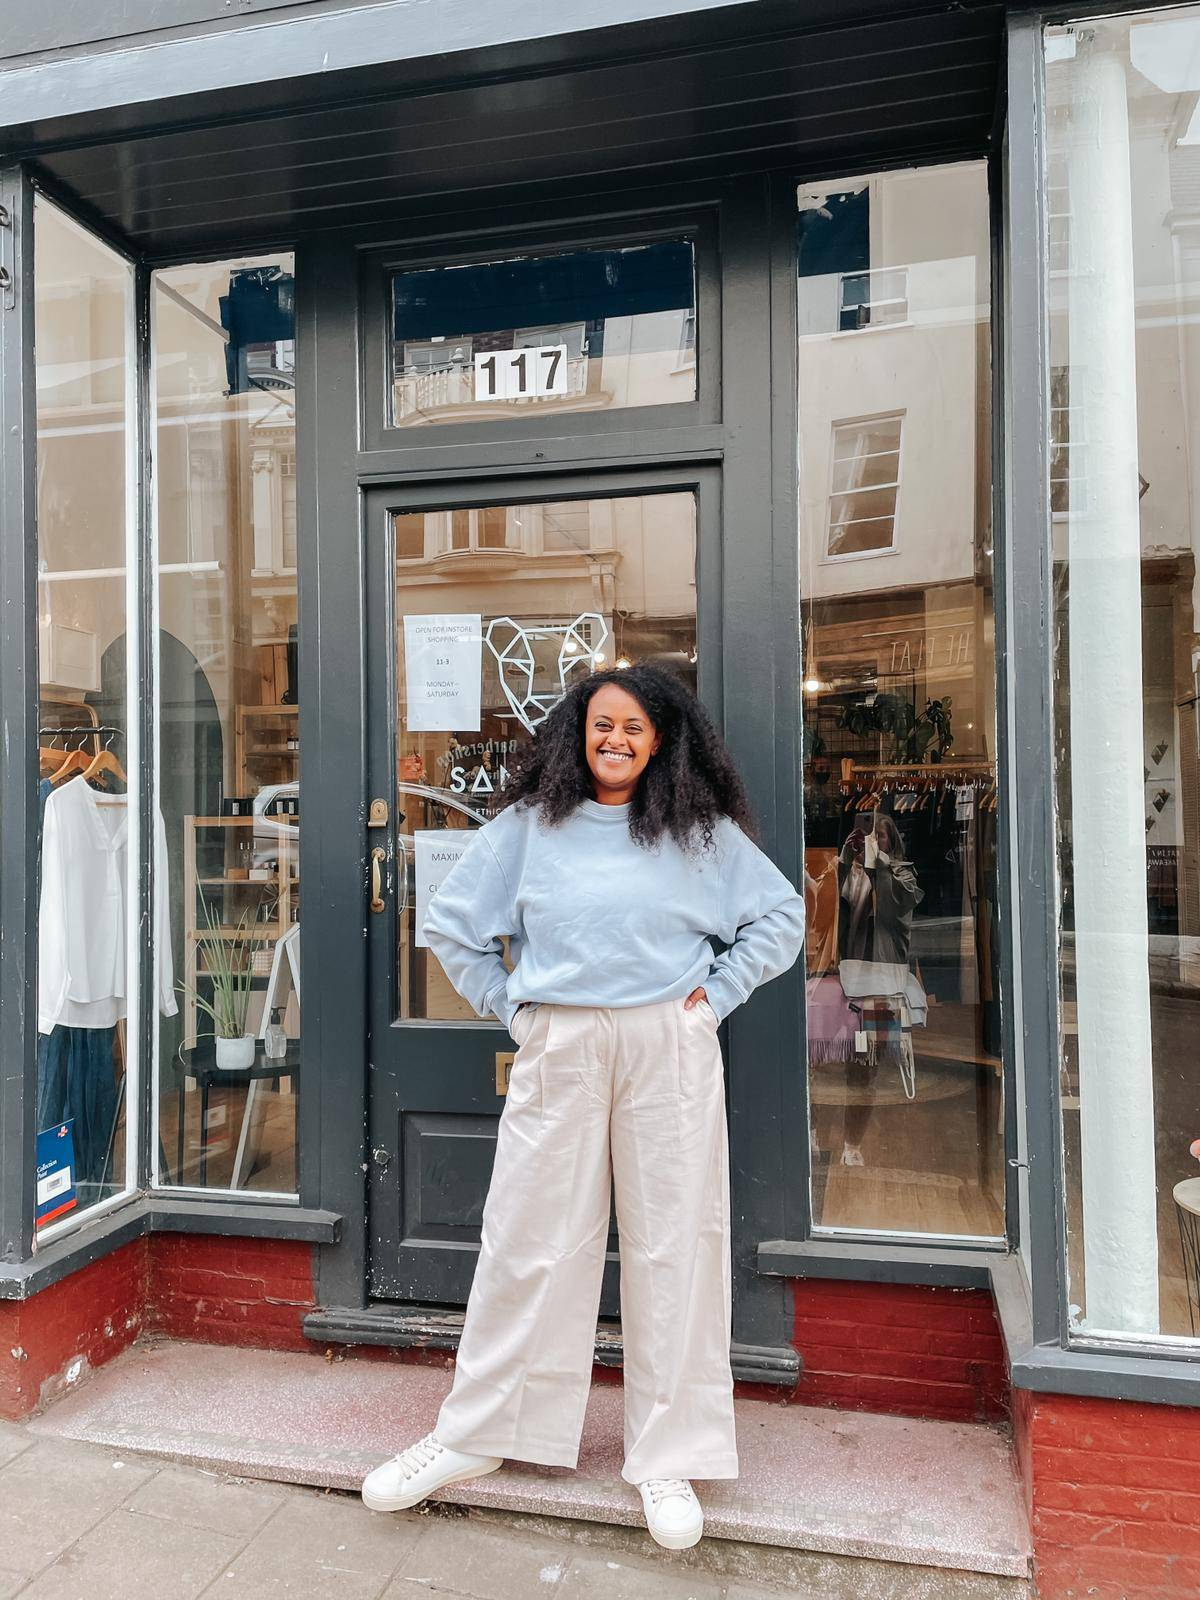 Shop Organic Cotton Lounge Wear Now At Sancho's Shop in Exeter, UK